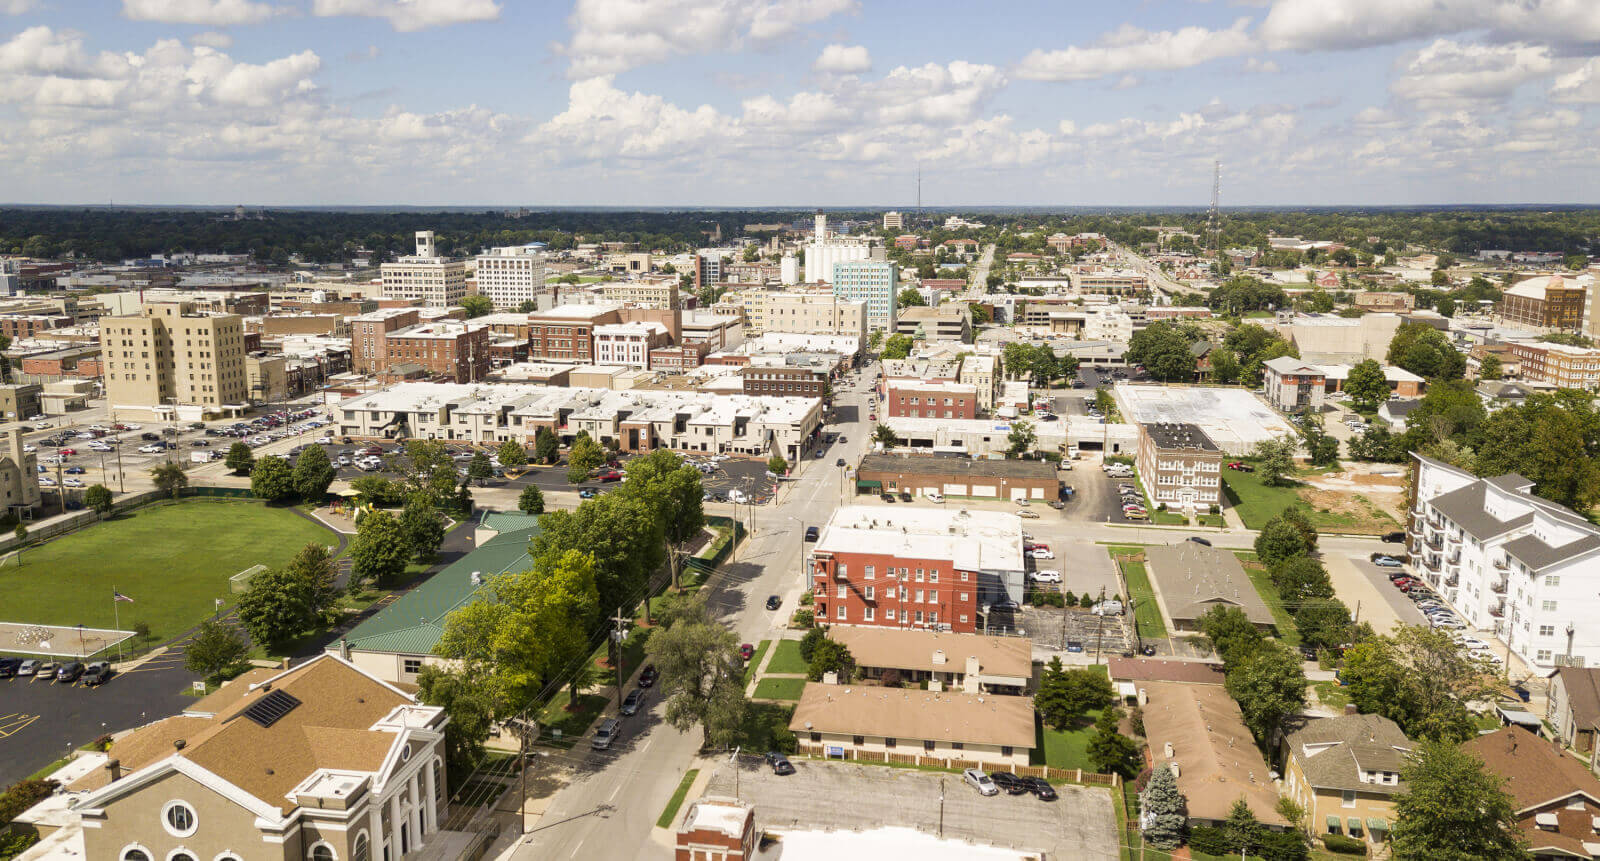 Find Drug and Alcohol Rehab in Springfield, Missouri